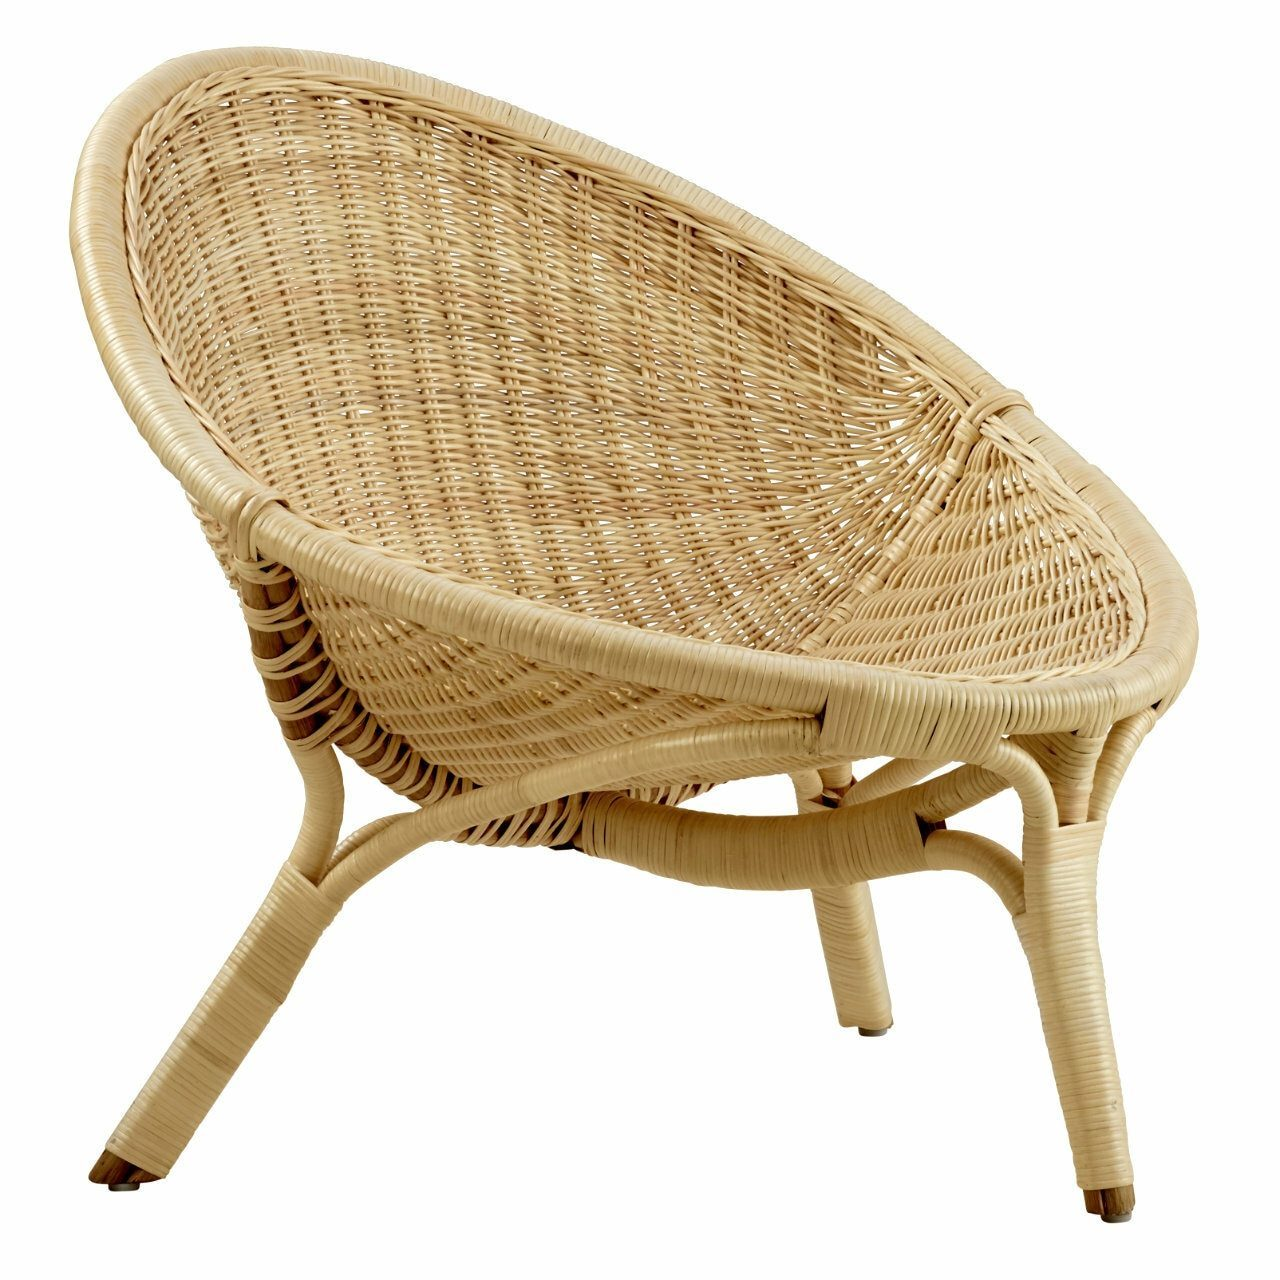 Sika, Rana Chair Cushion, - Placewares